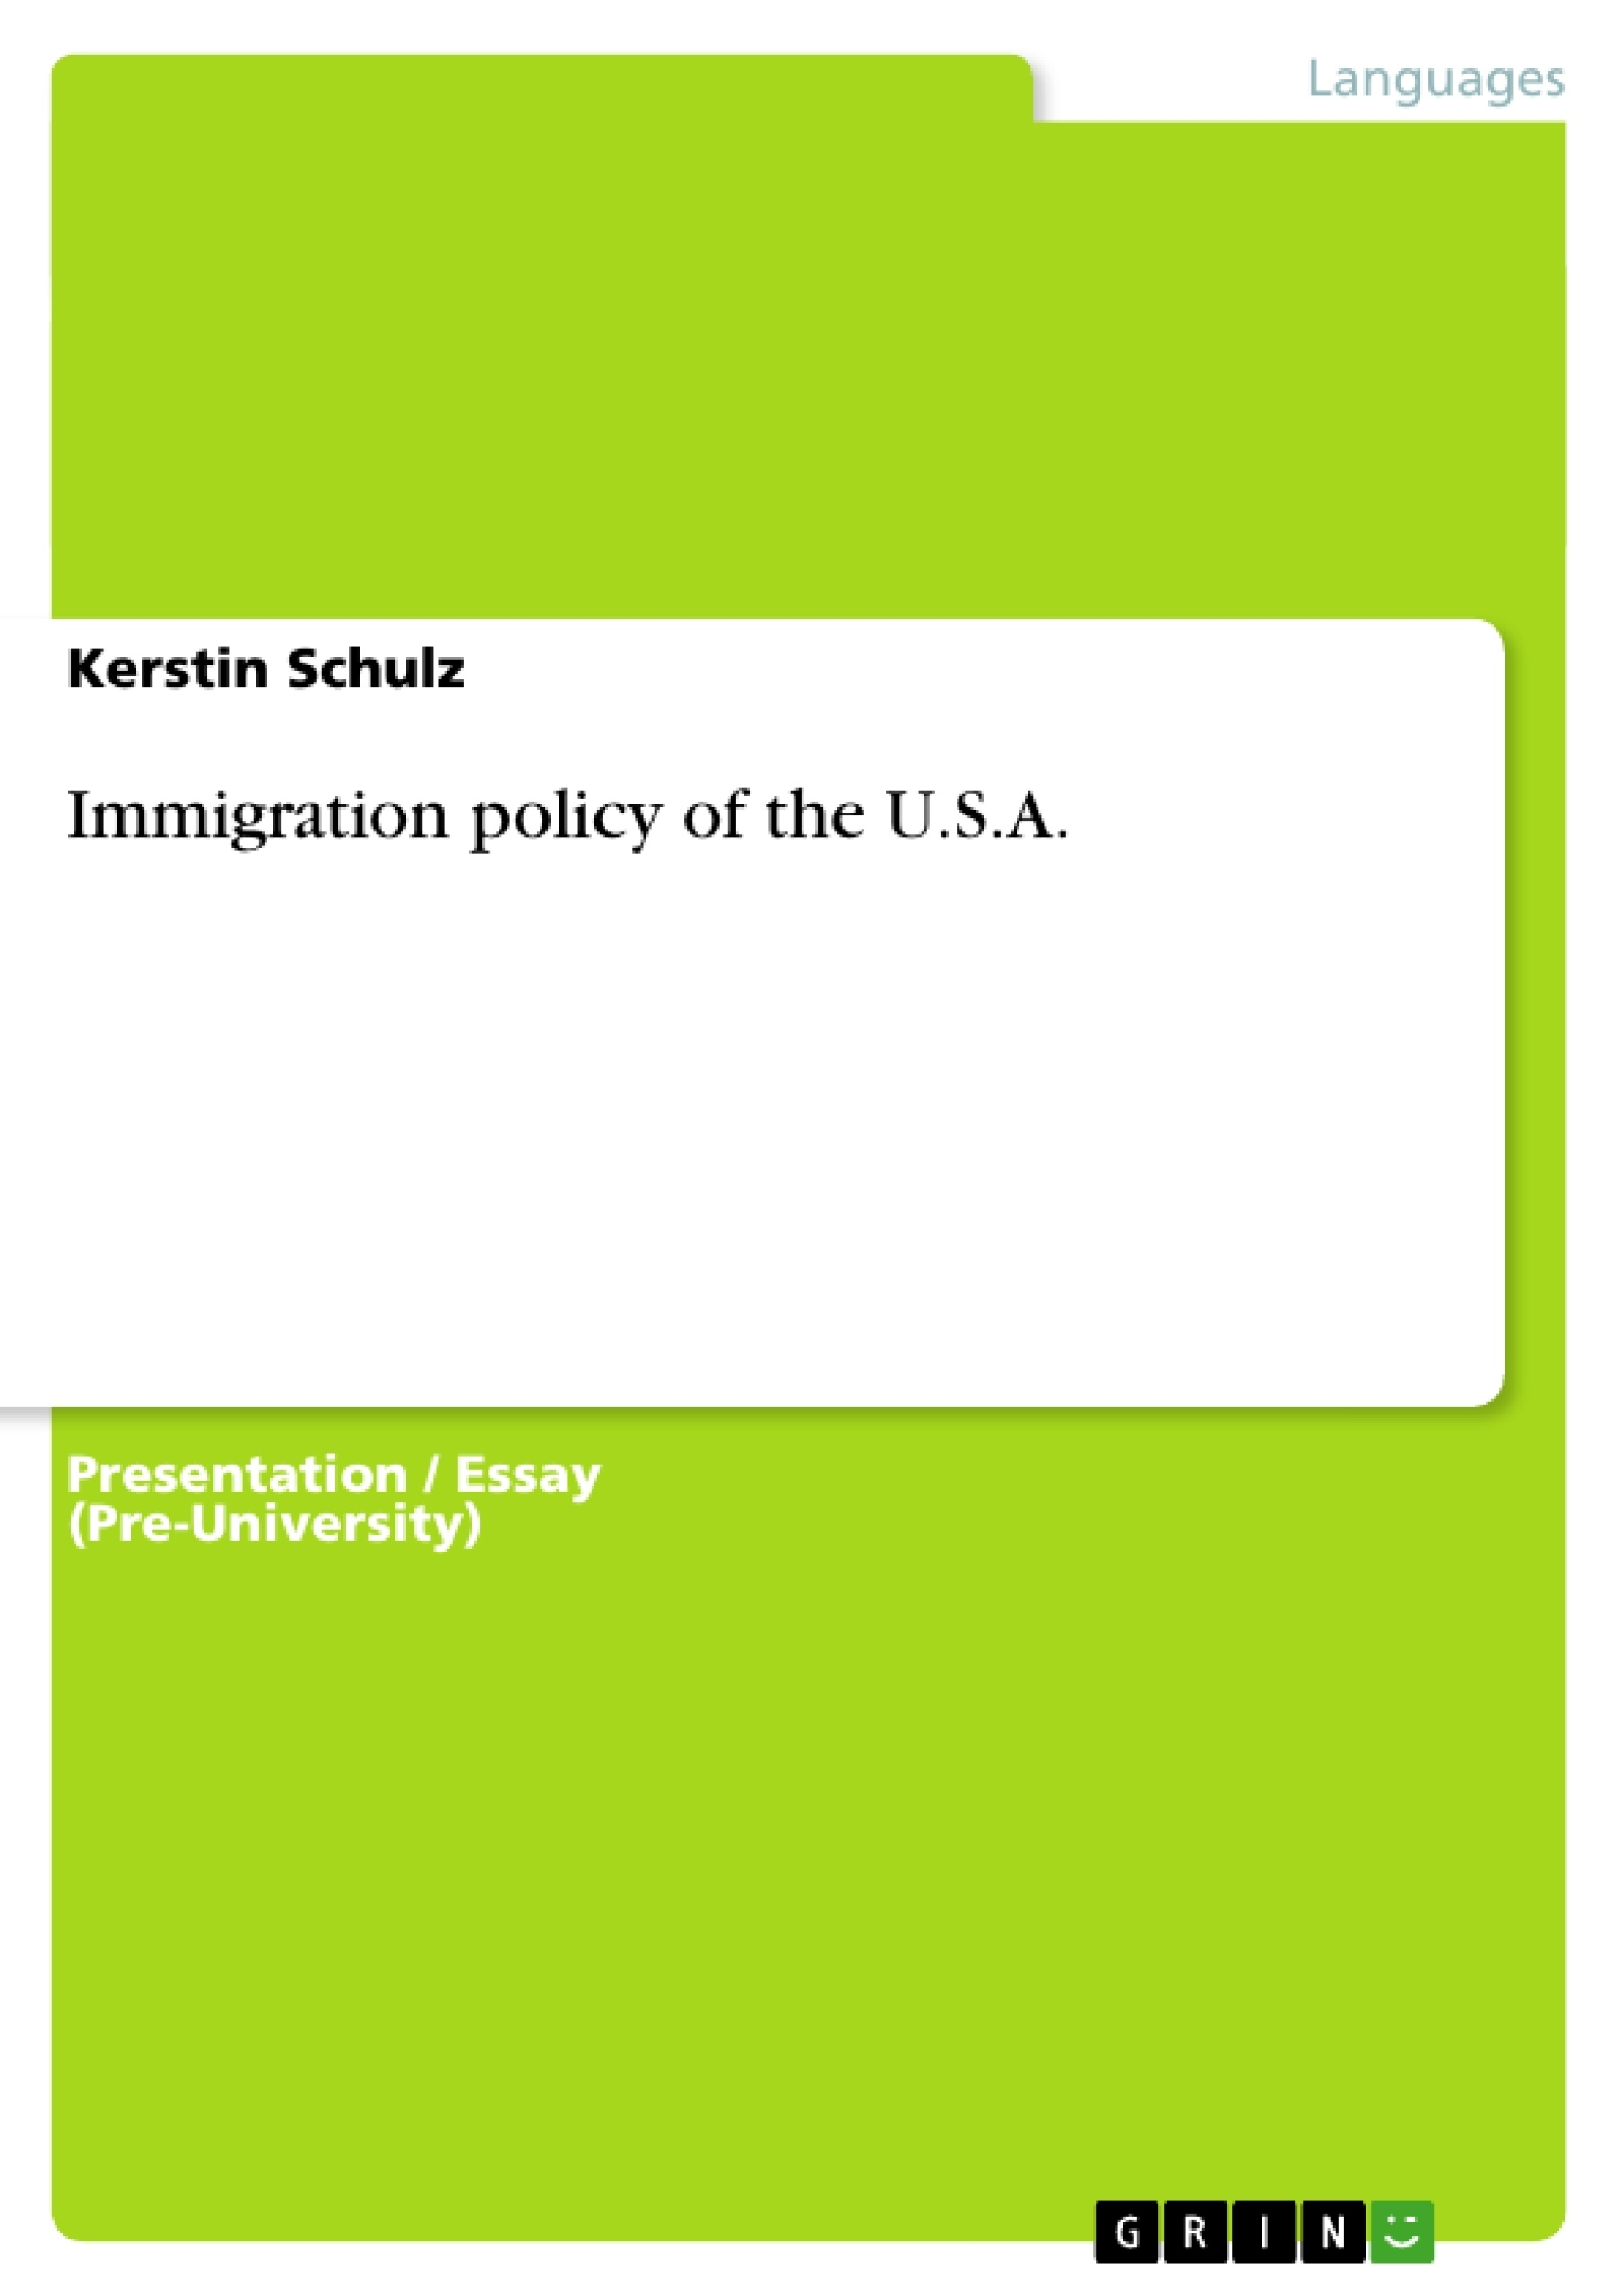 Thesis immigration policy